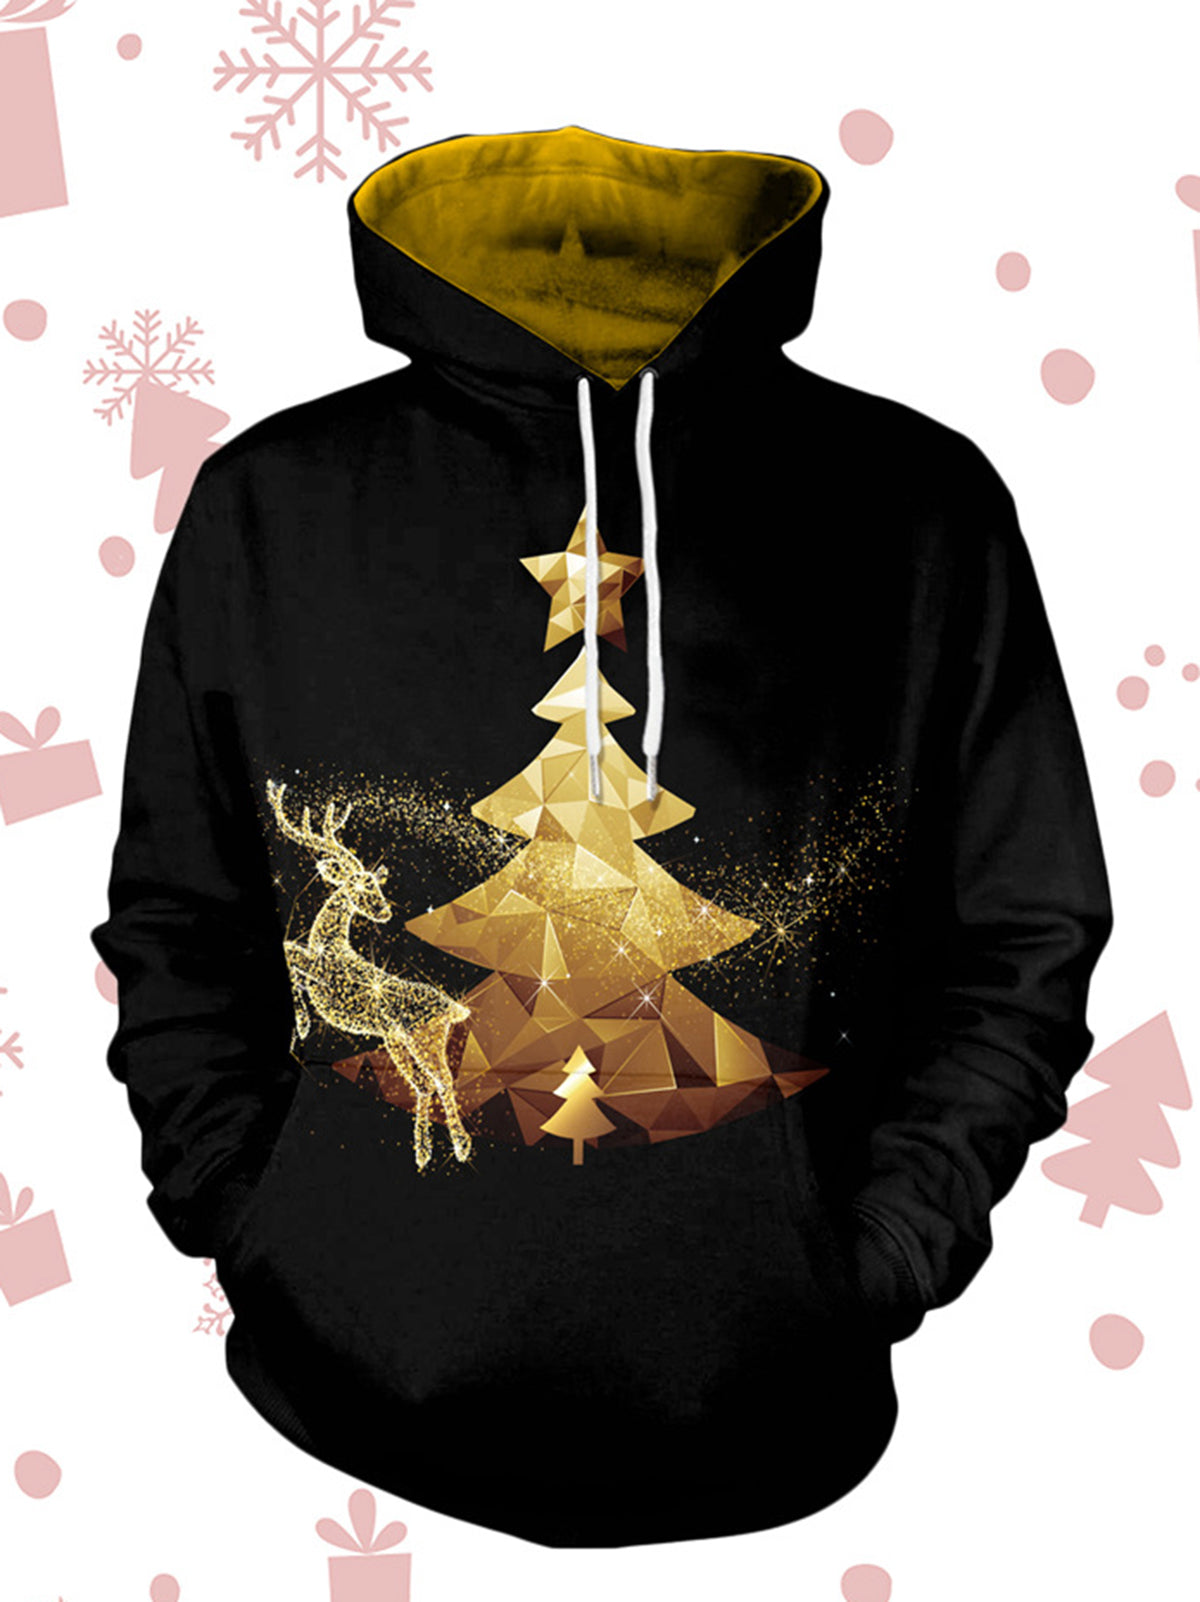 Christmas Printed Long Sleeve Graphic Hoodie Sweater - kattystory